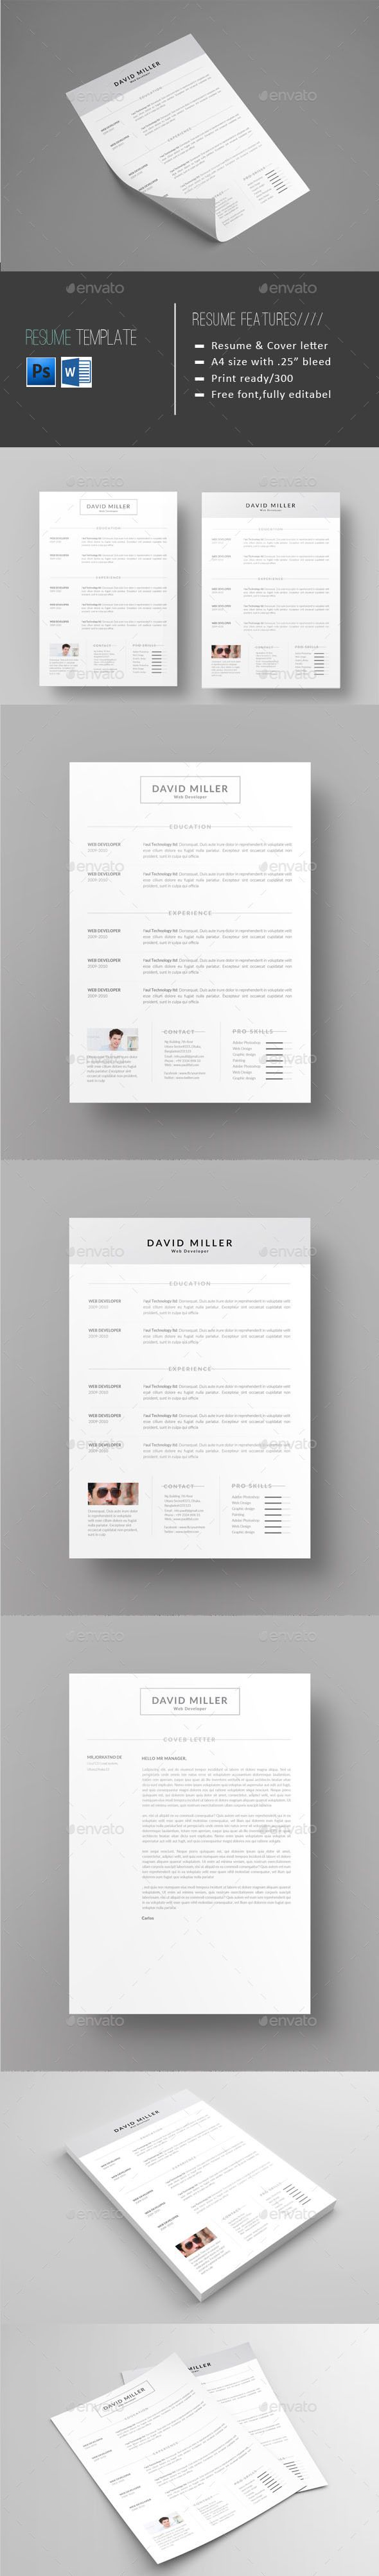 Cv Templates Design%0A Resume Design Template  Resumes Stationery Template PSD  Download here   https